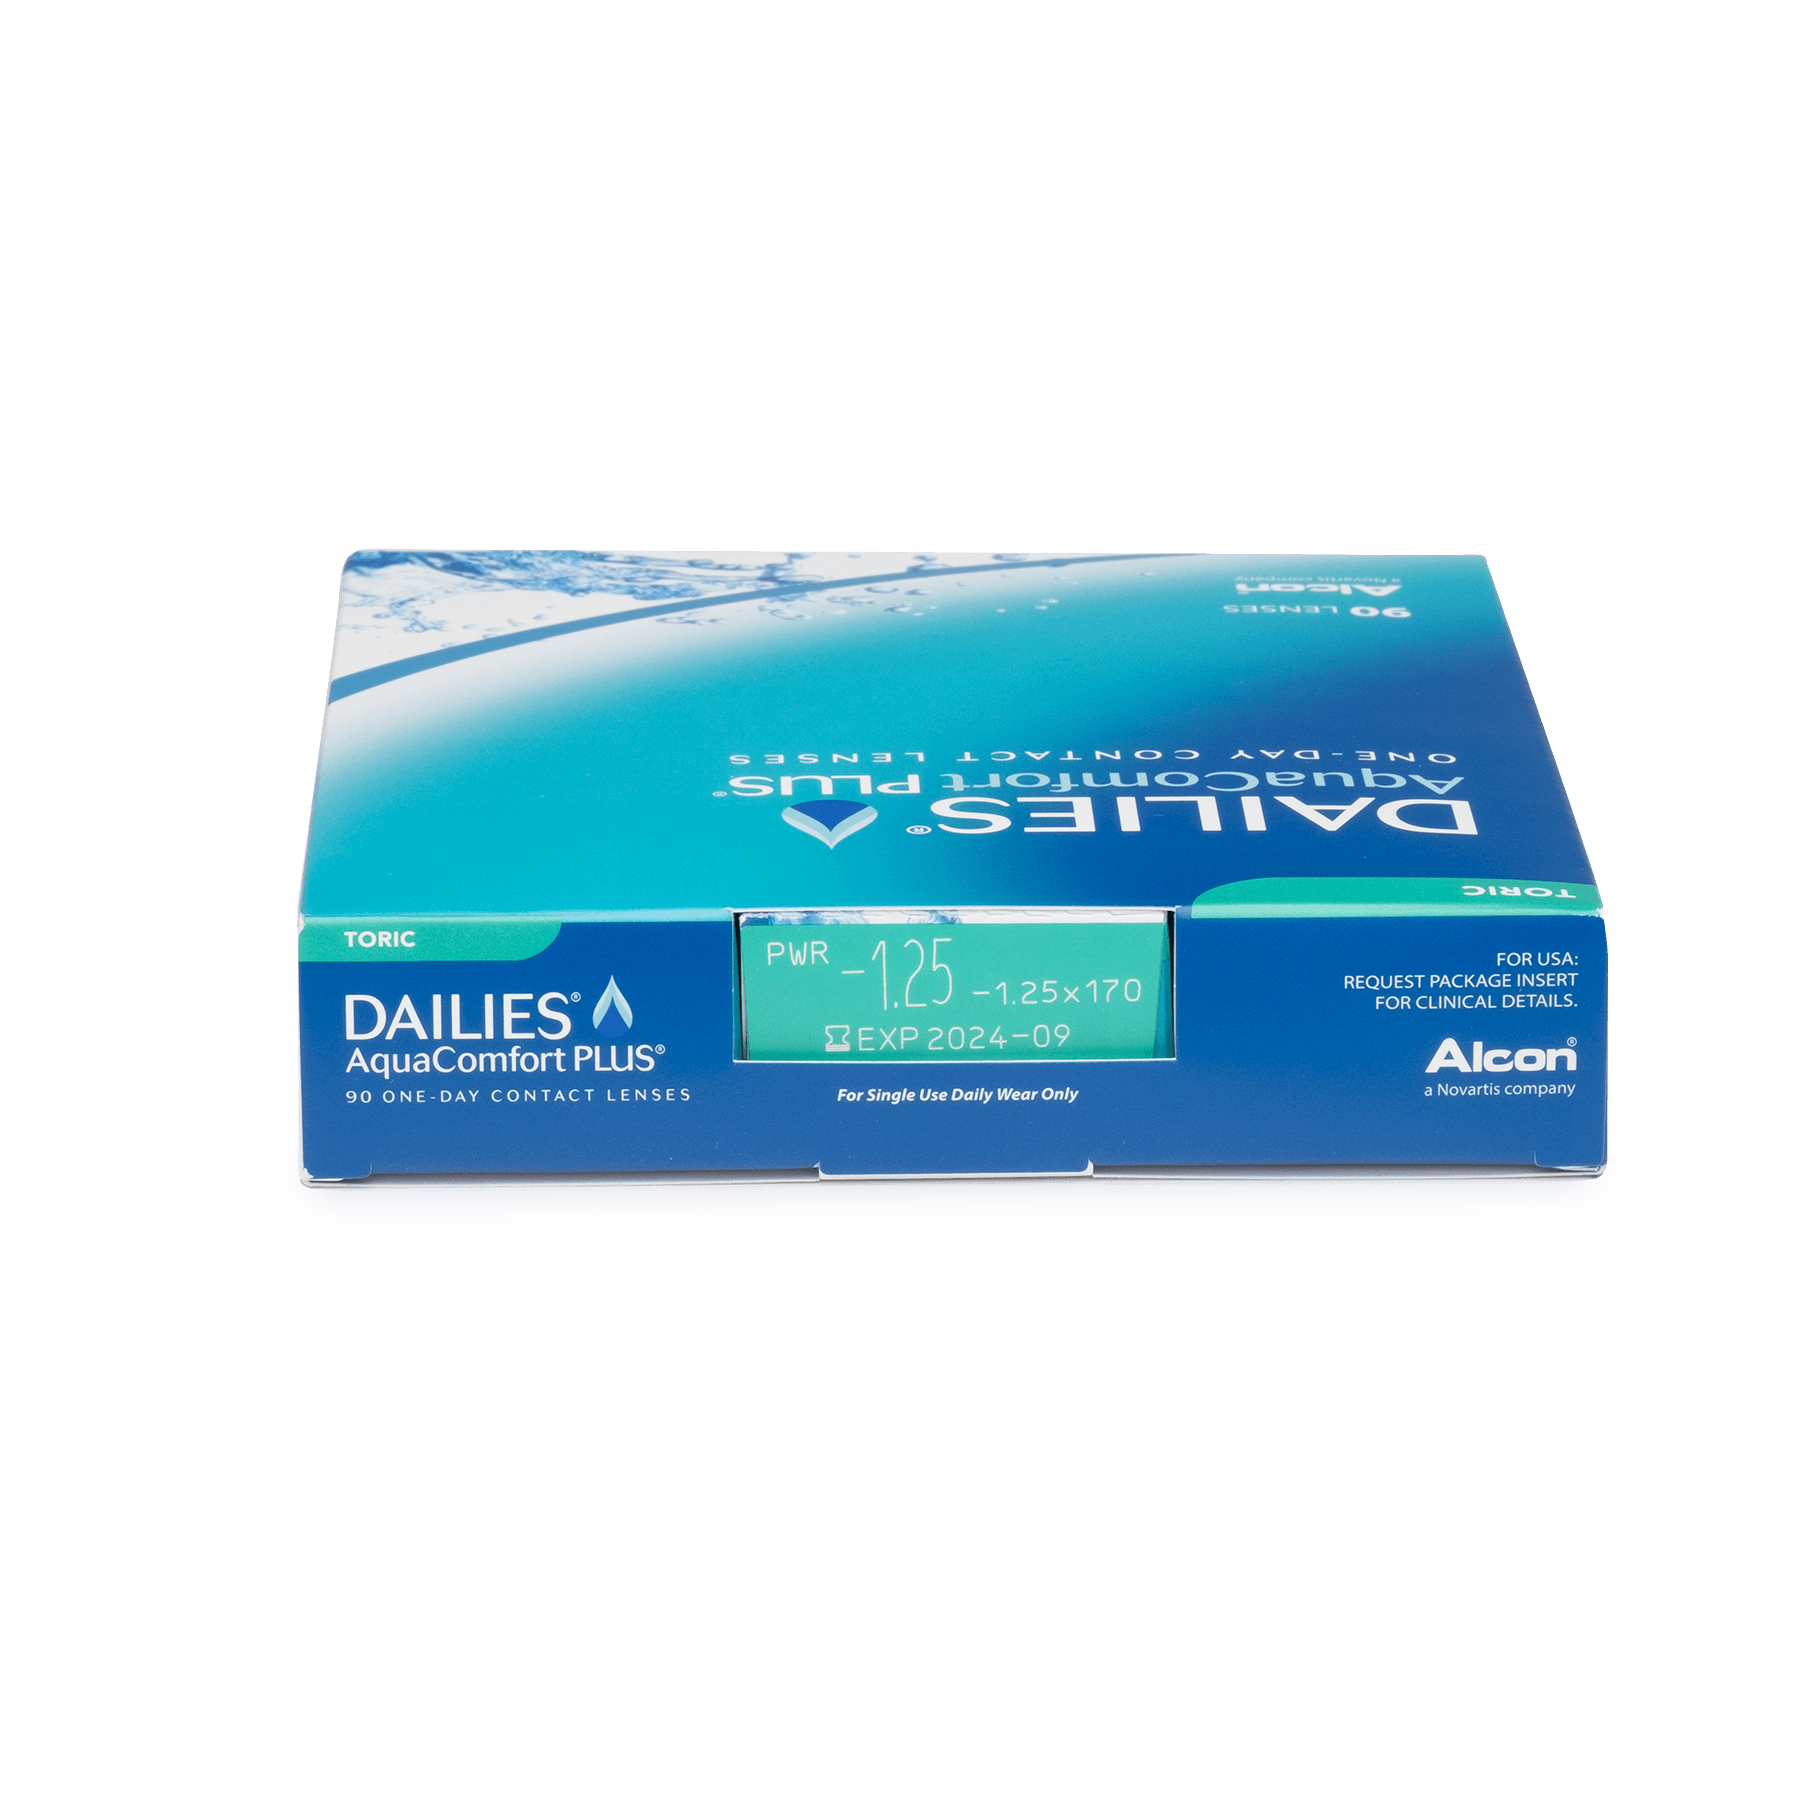 DAILIES AquaComfort Plus Toric 90pk*